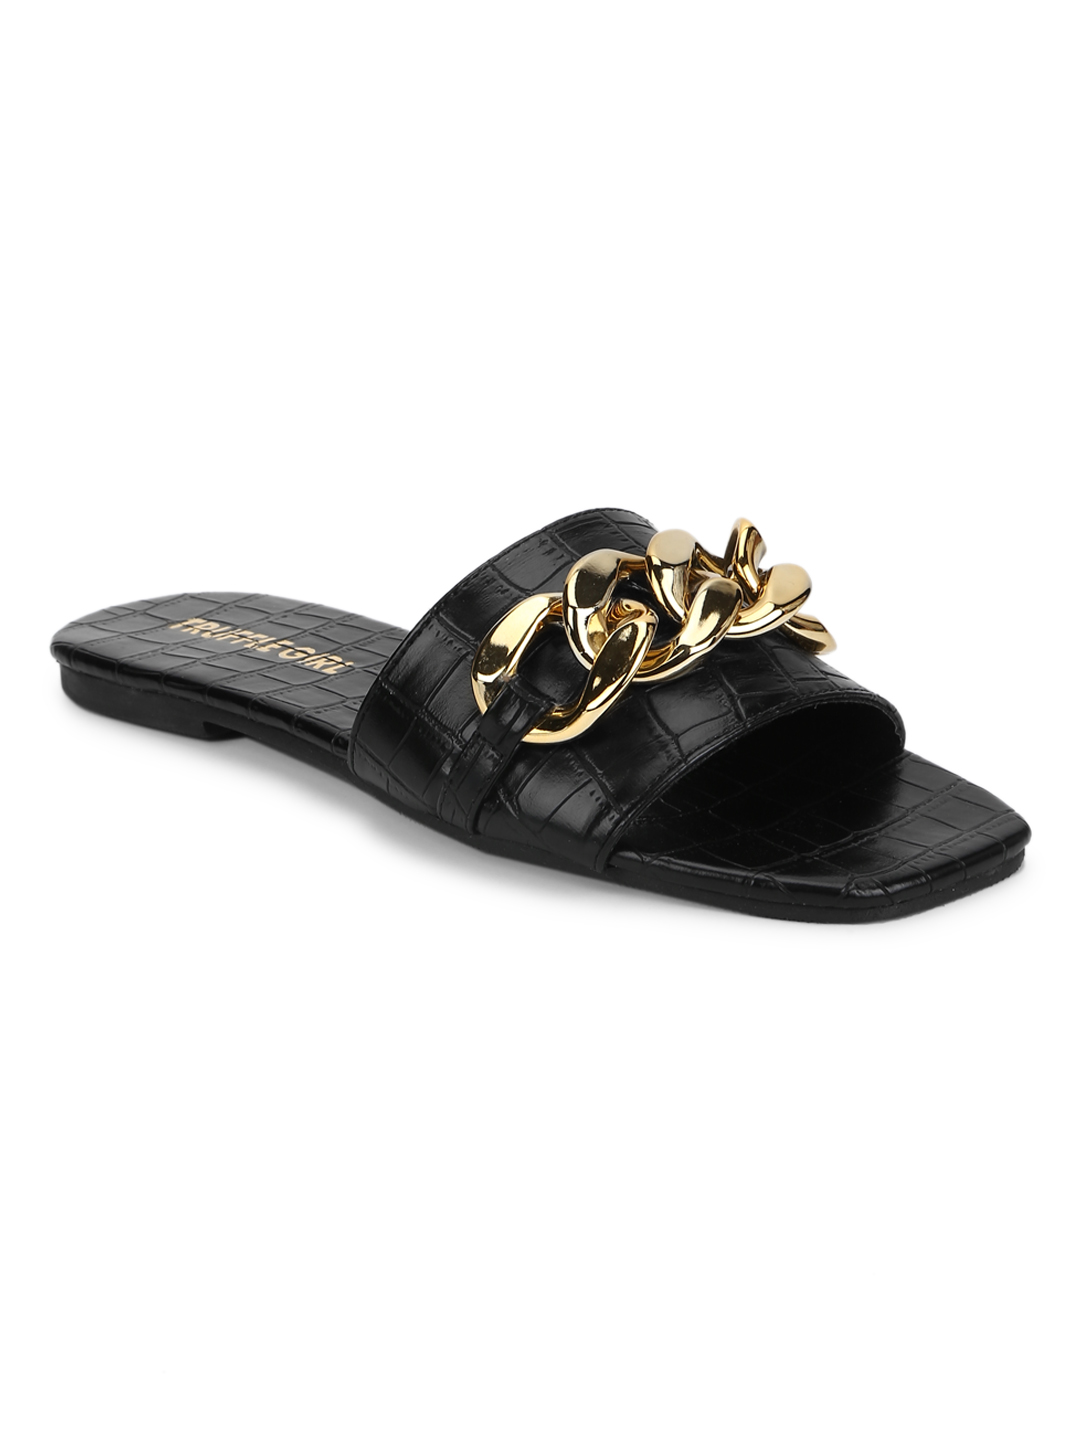 Truffle Collection | Truffle Collection Black Croc PU Gold Chain Slides